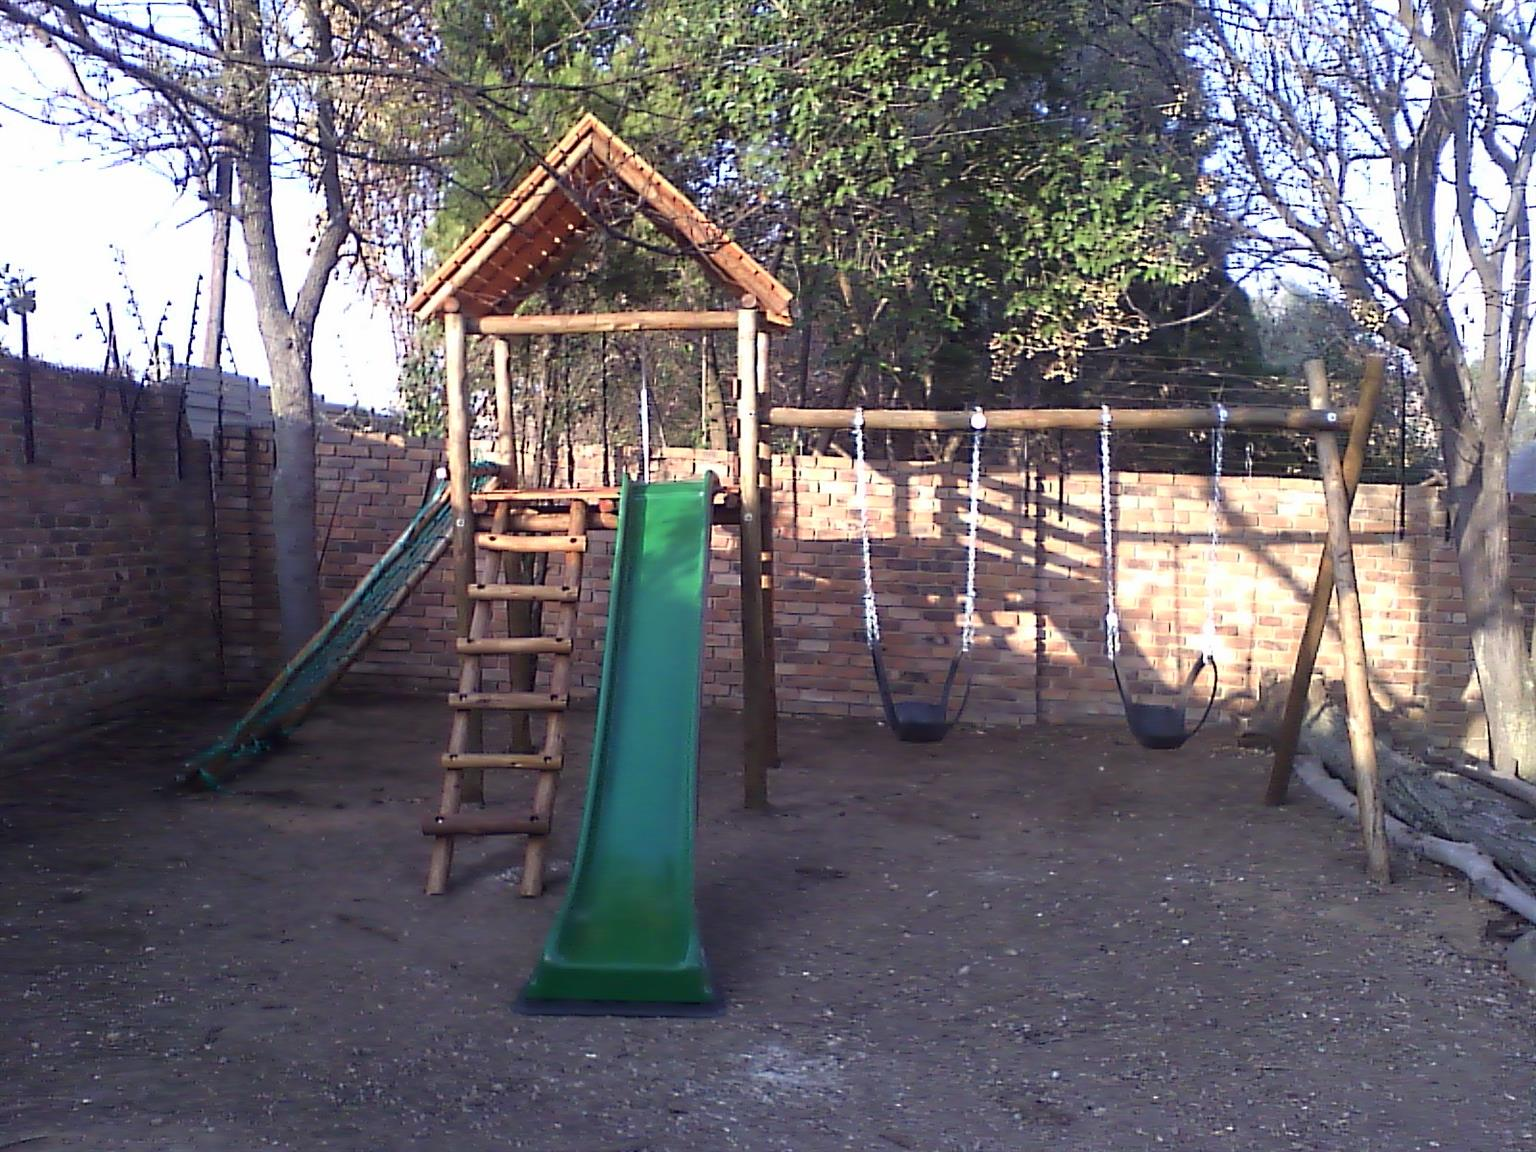 New jungle gym R5800.00 free delivery and installation